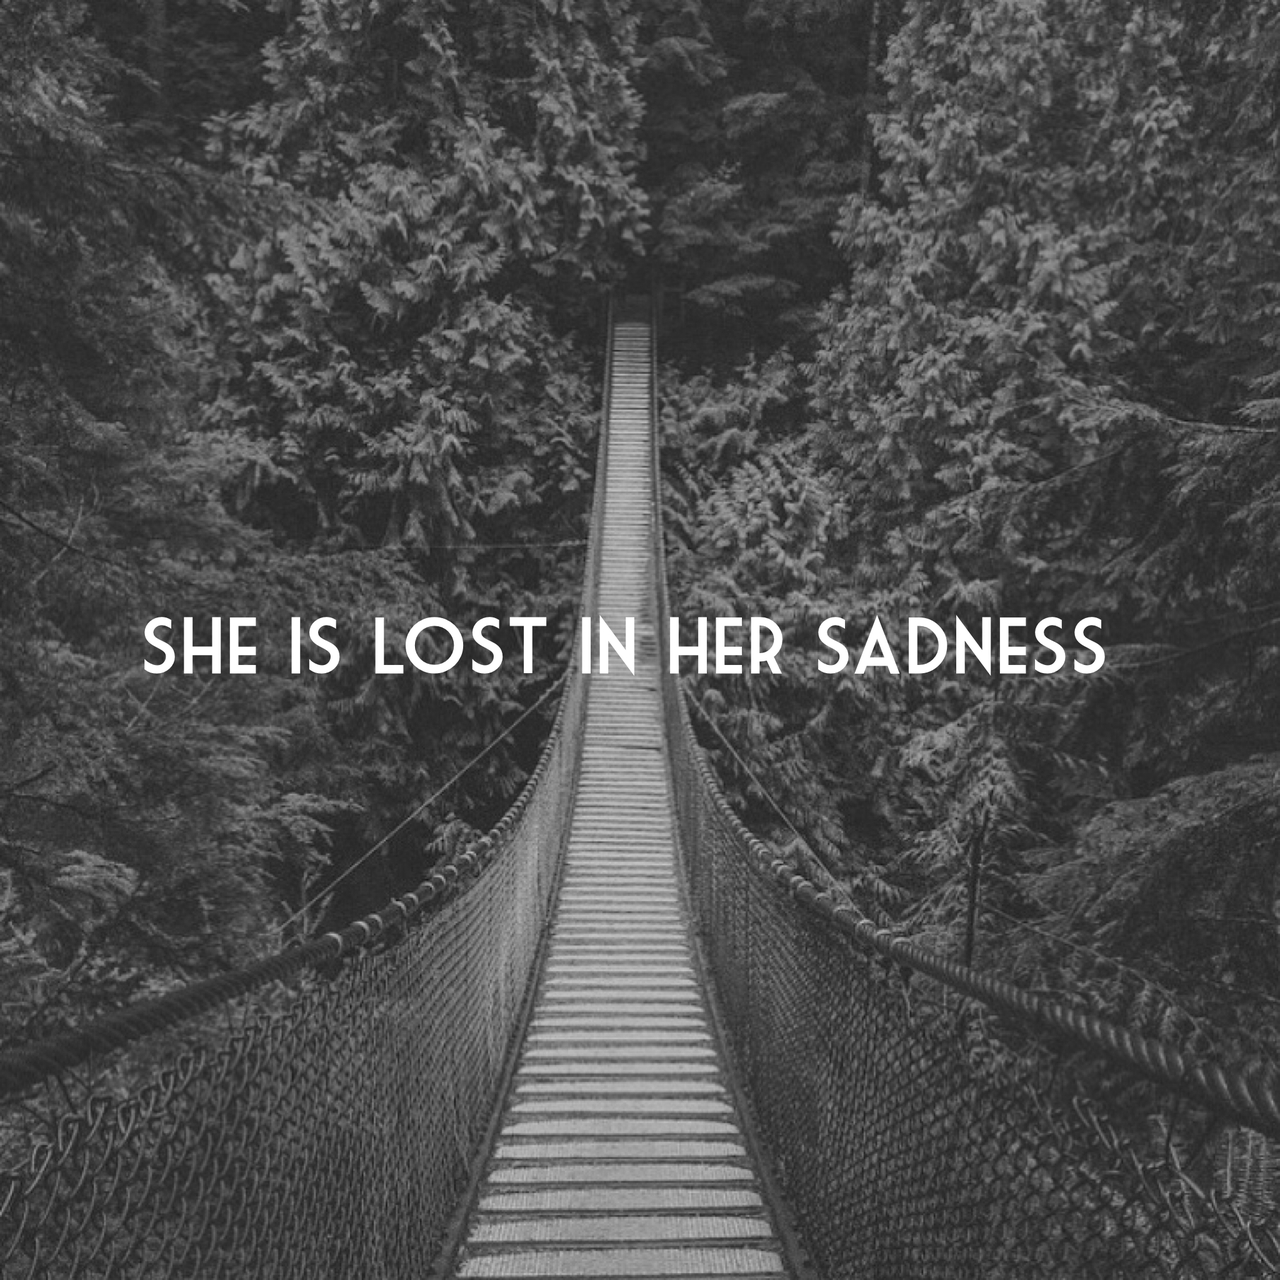 She is lost in her sadness on we heart it